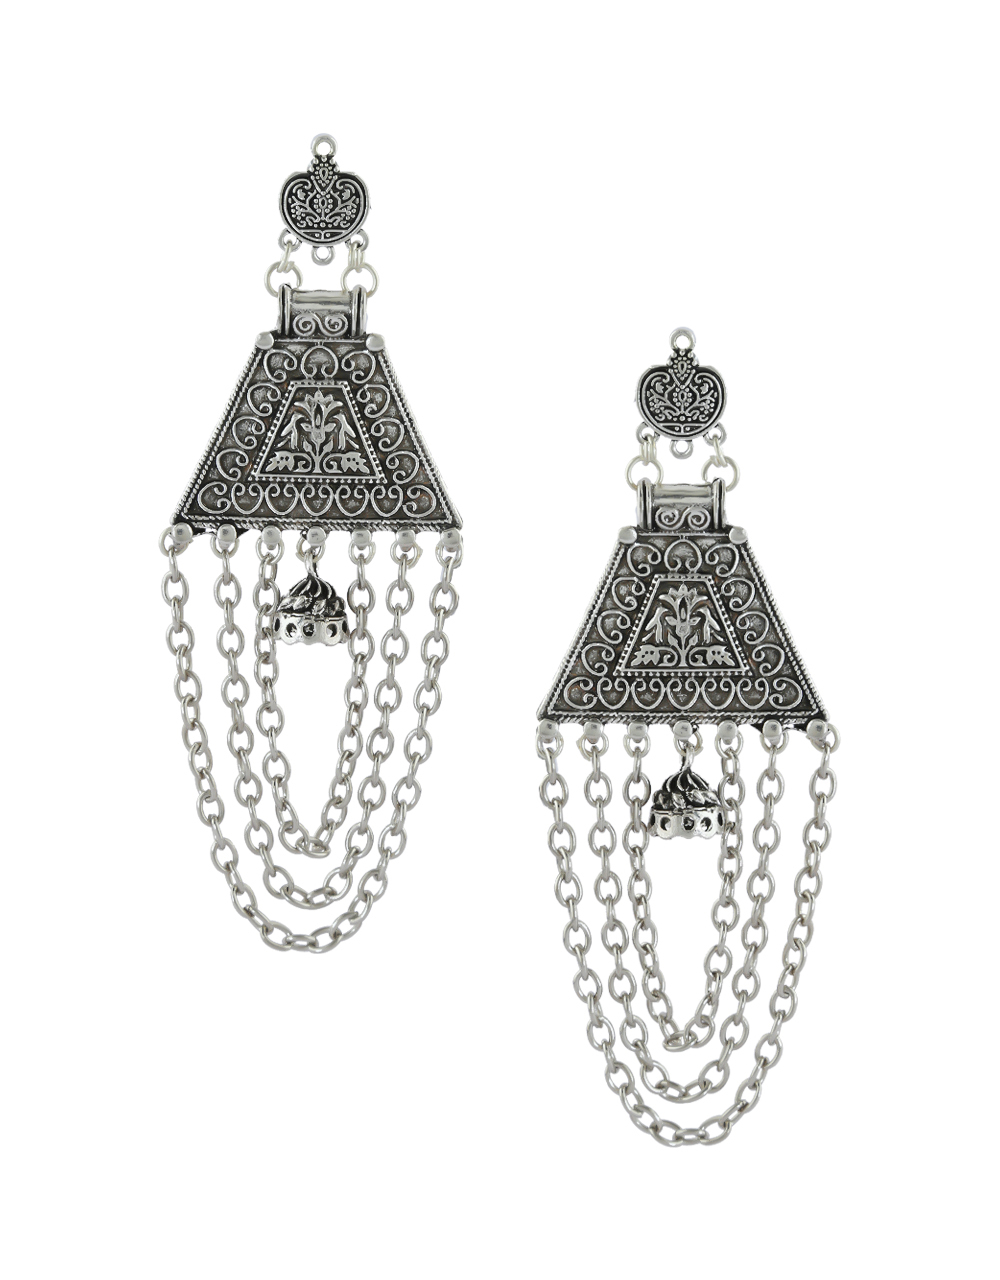 Unique Design Silver Oxidised Finish Layered Earrings